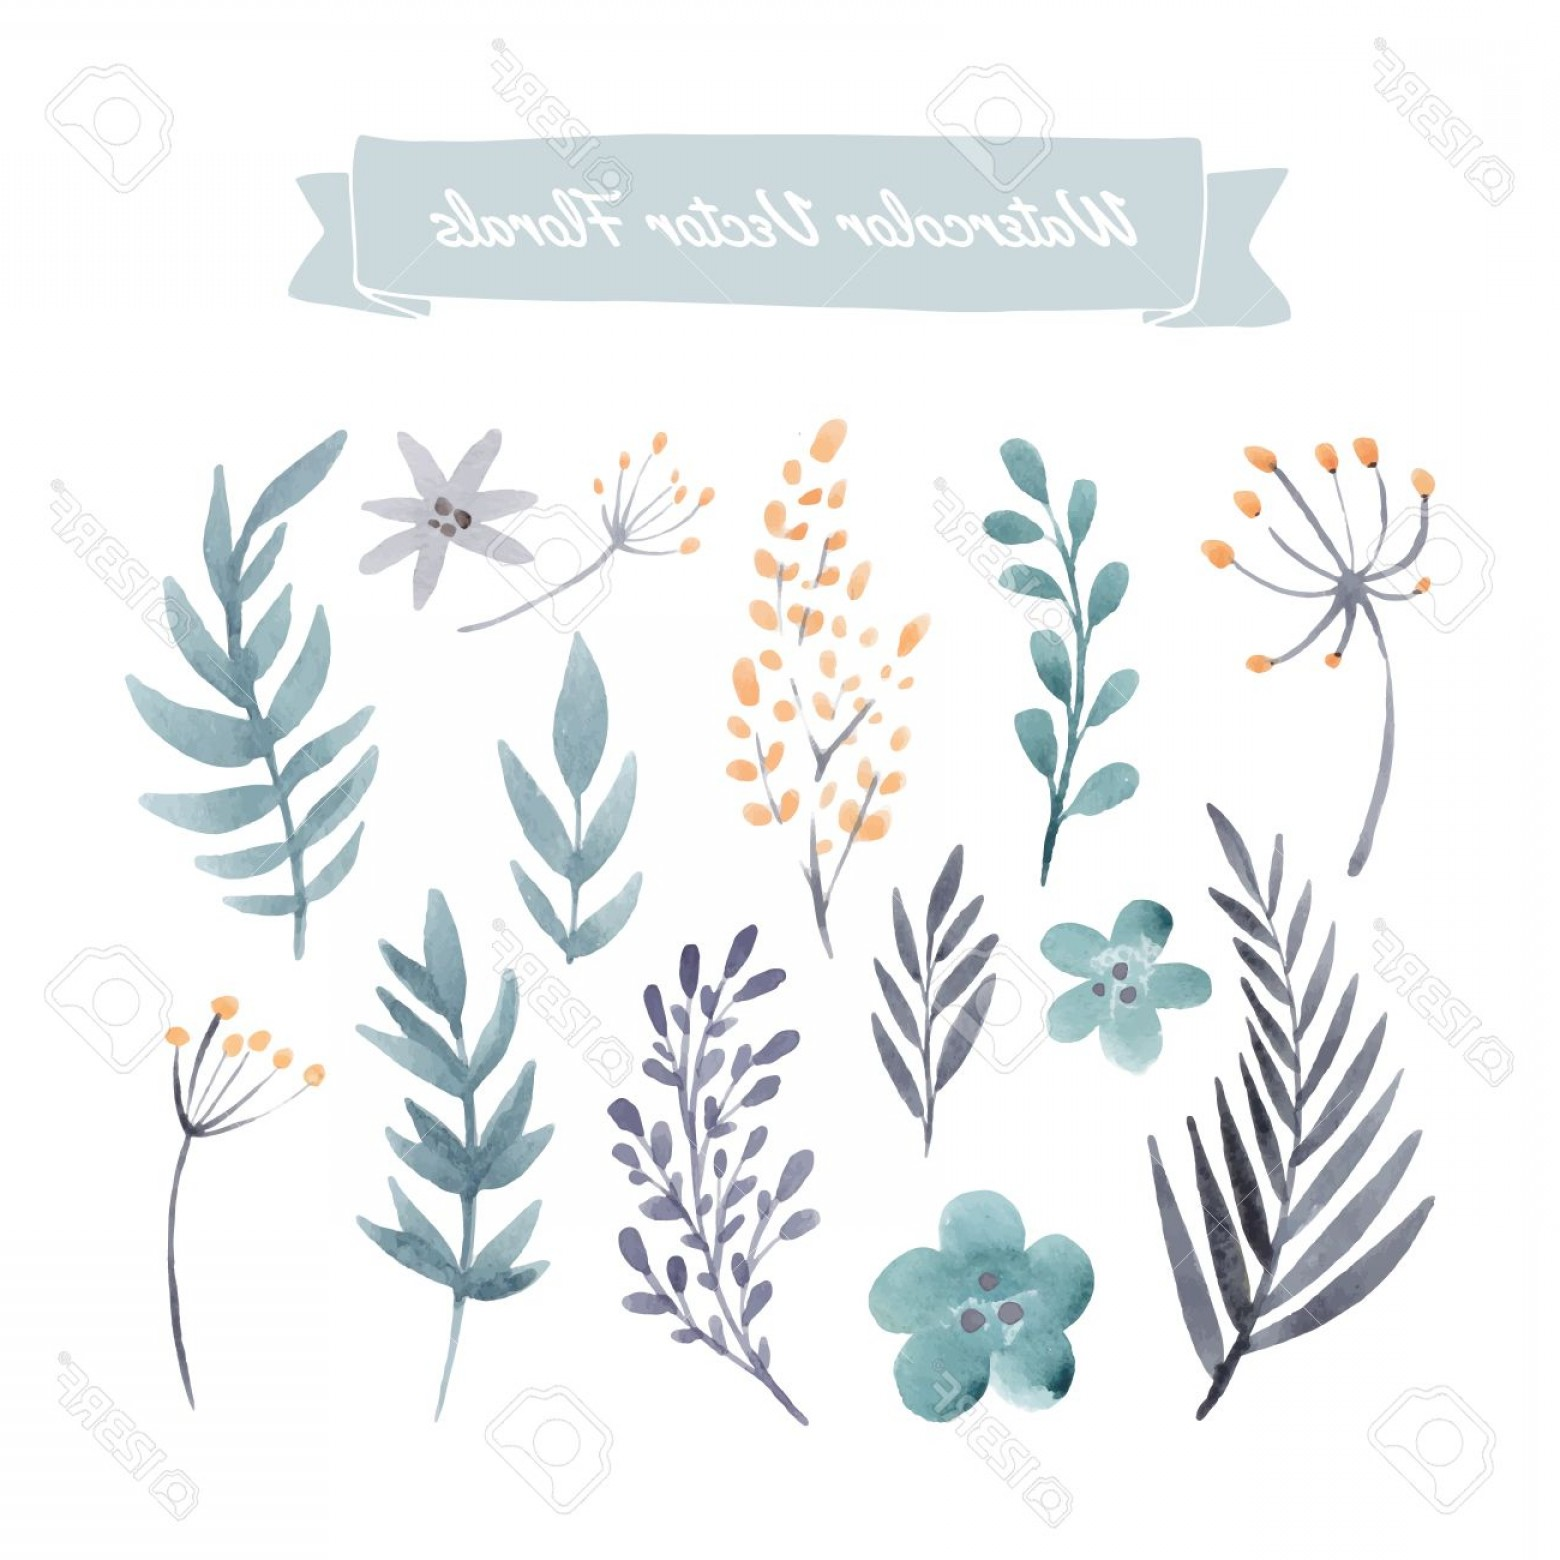 Watercolor Vector Free Designs: Photostock Vector Set Of Handpainted Watercolor Vector Flowers And Leaves Design Element For Summer Wedding Spring Con